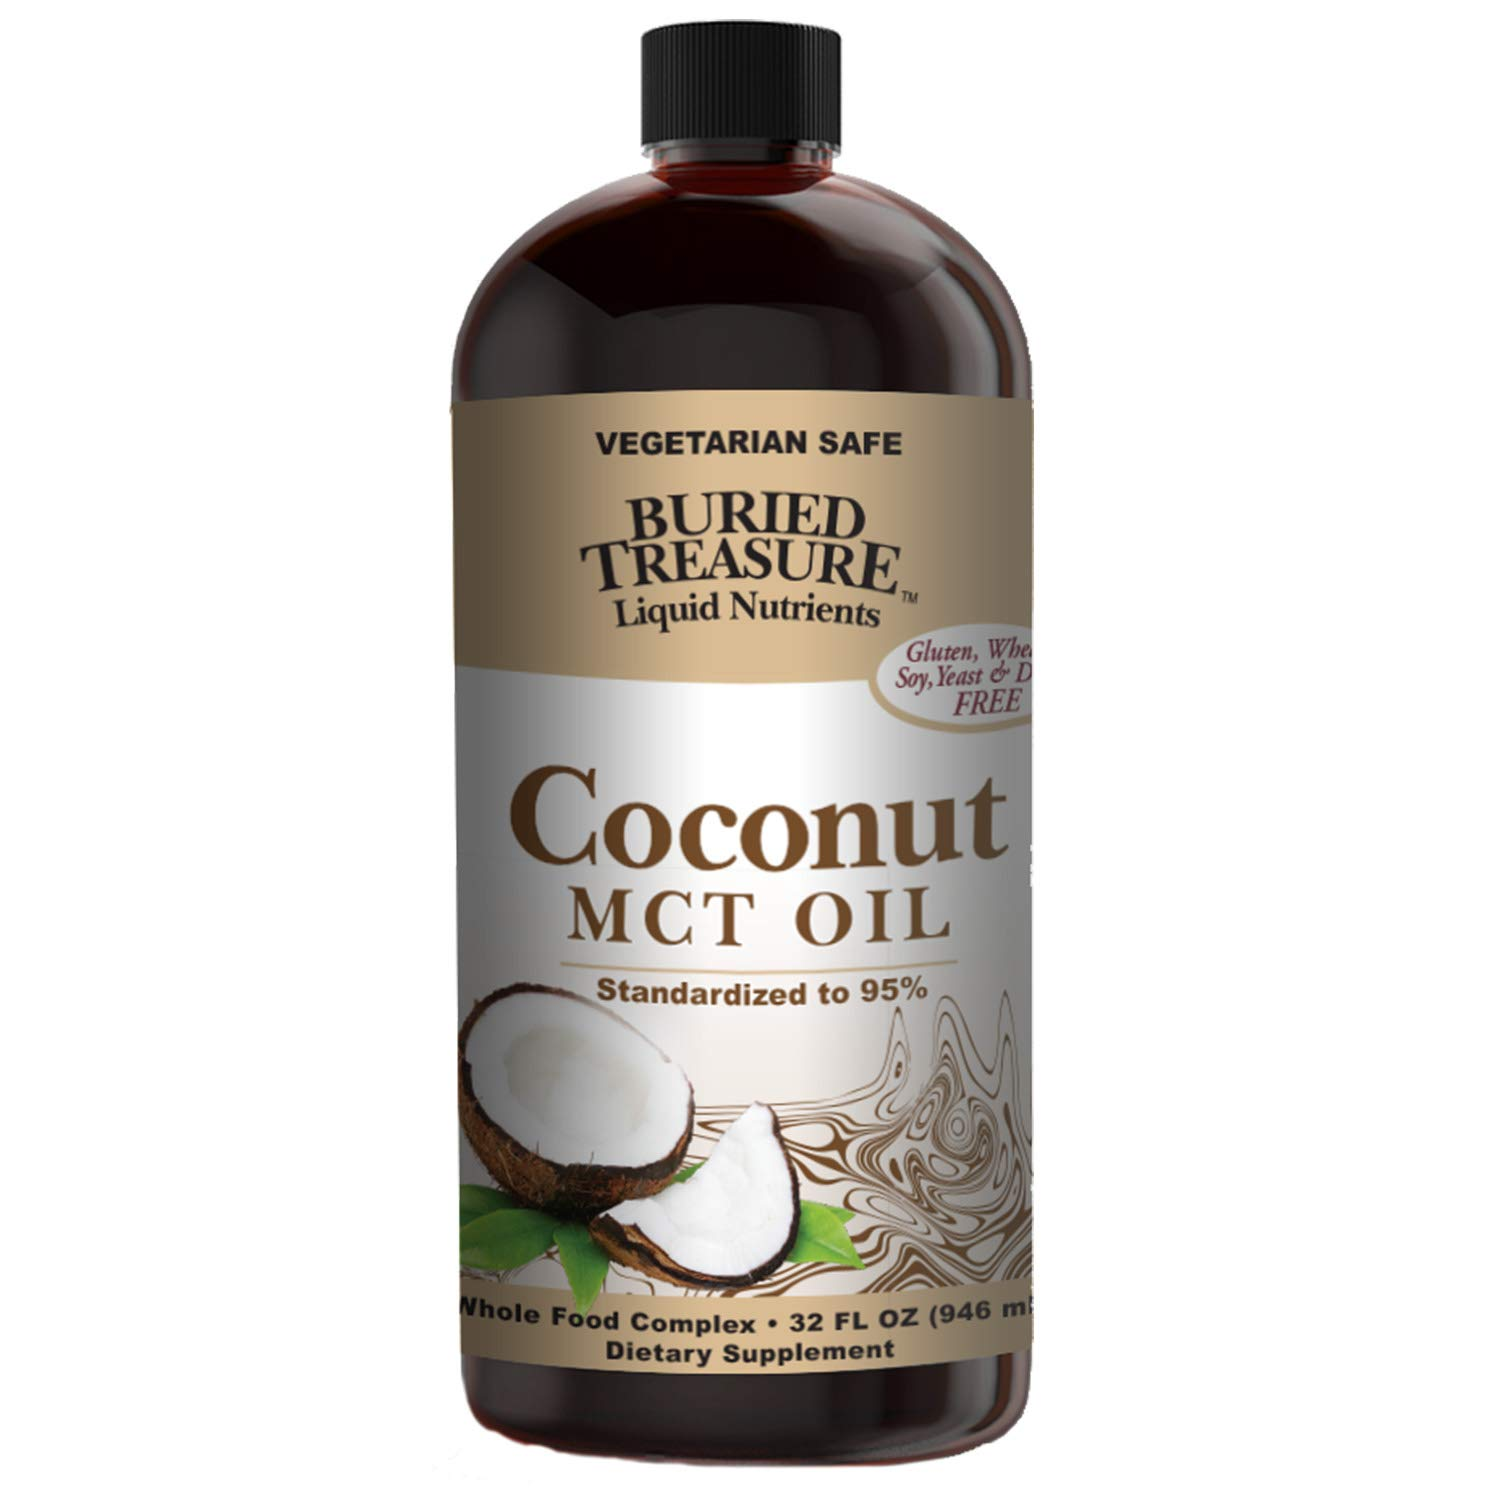 Buried Treasure MCT Coconut Oil for Healthy Brain Function Increased Performance Keto & Paleo Diet Safe Flash Steamed Medium Chain Triglycerides Great in Coffee, Smoothies & Salad Dressings 32 Ounce ... by Buried Treasure